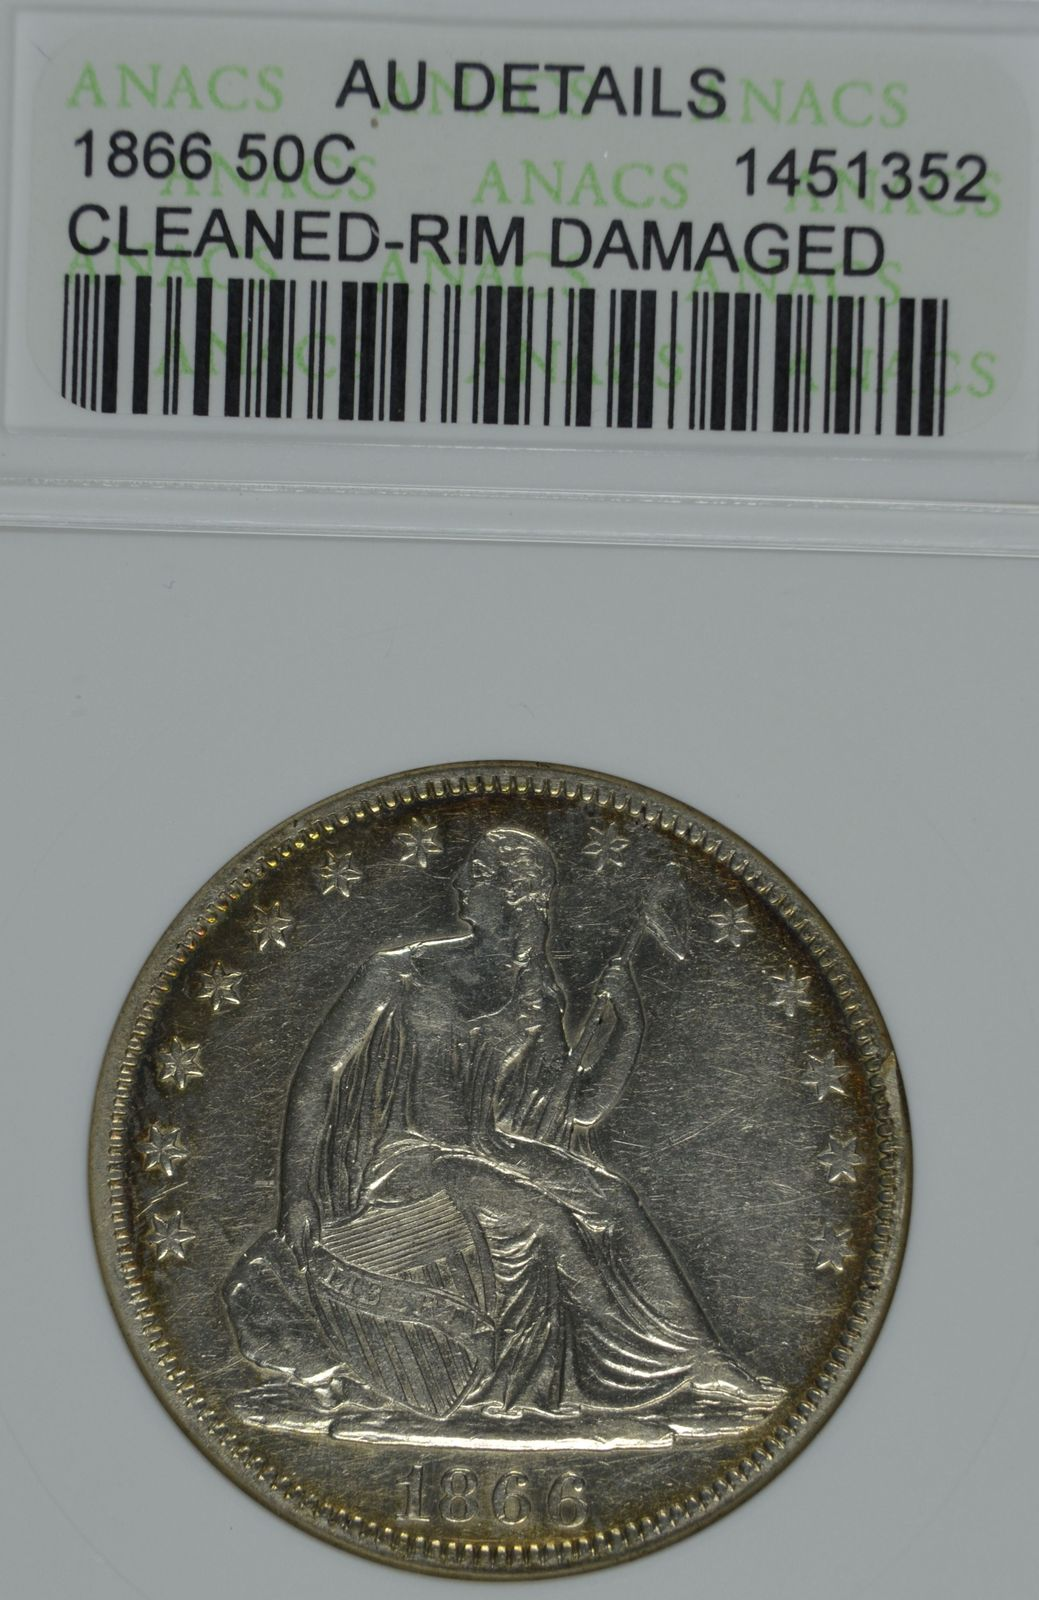 Primary image for 1866 Seated Liberty circulated silver half dollar ANACS AU details Cleaned